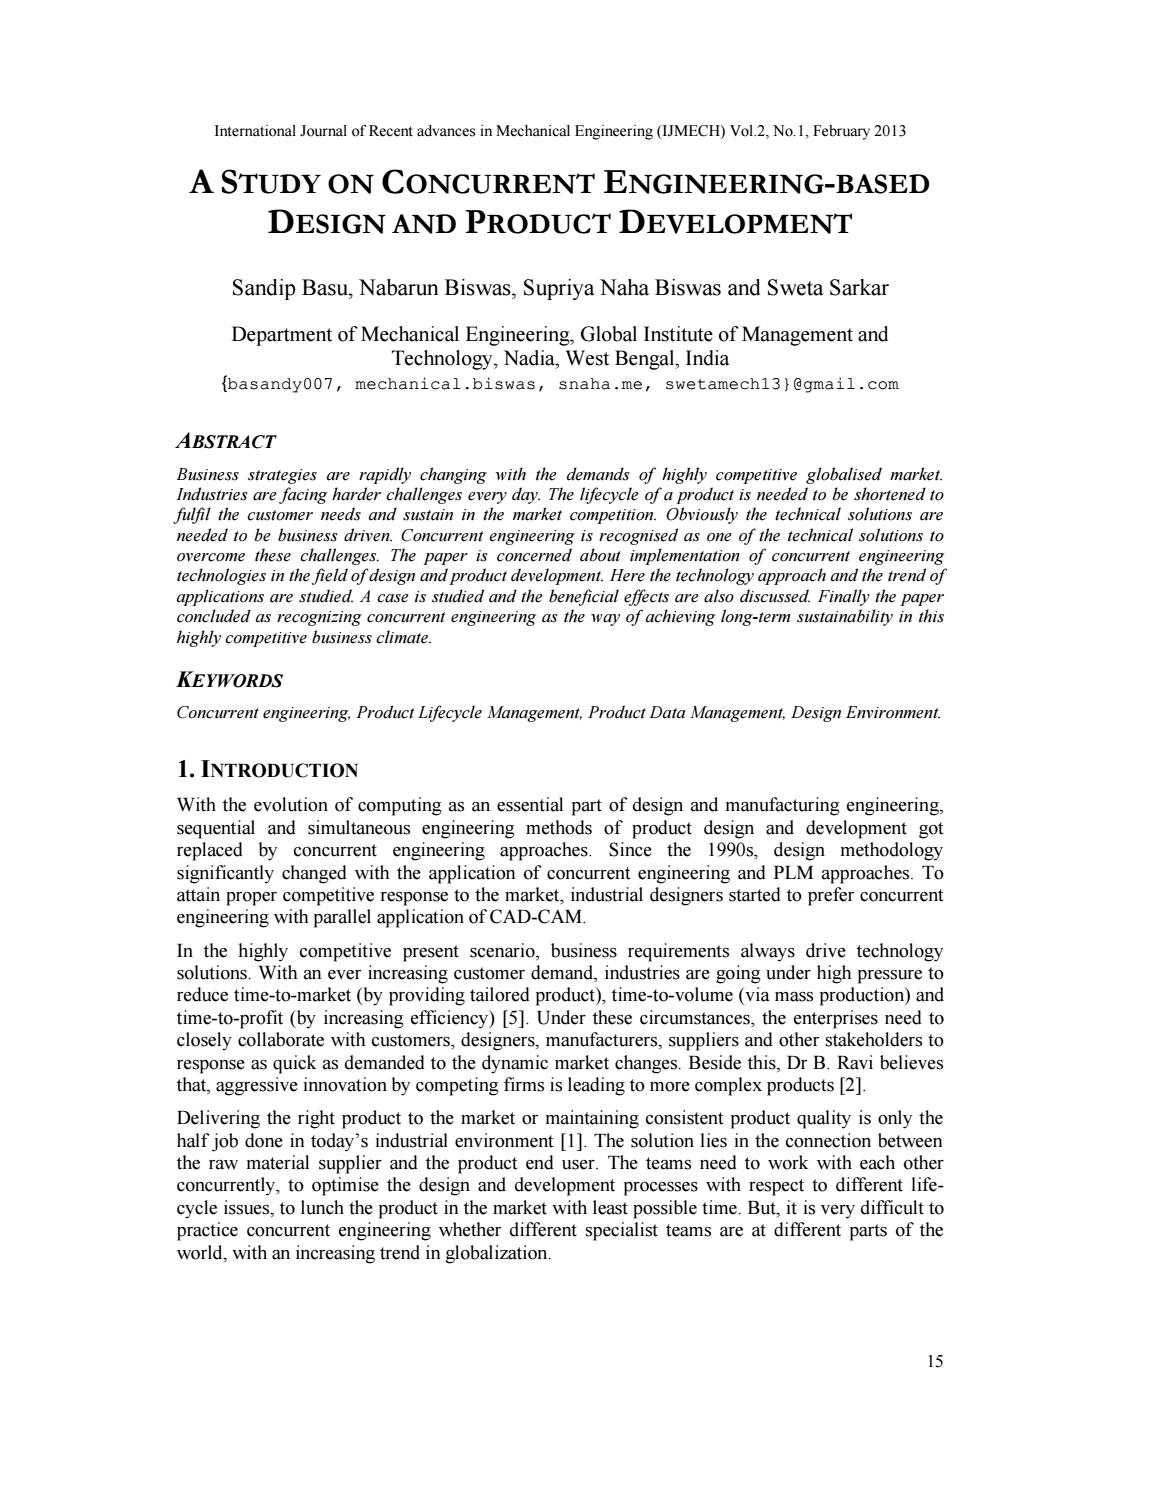 A Study On Concurrent Engineering Based Design And Product Development By Ijmech Issuu